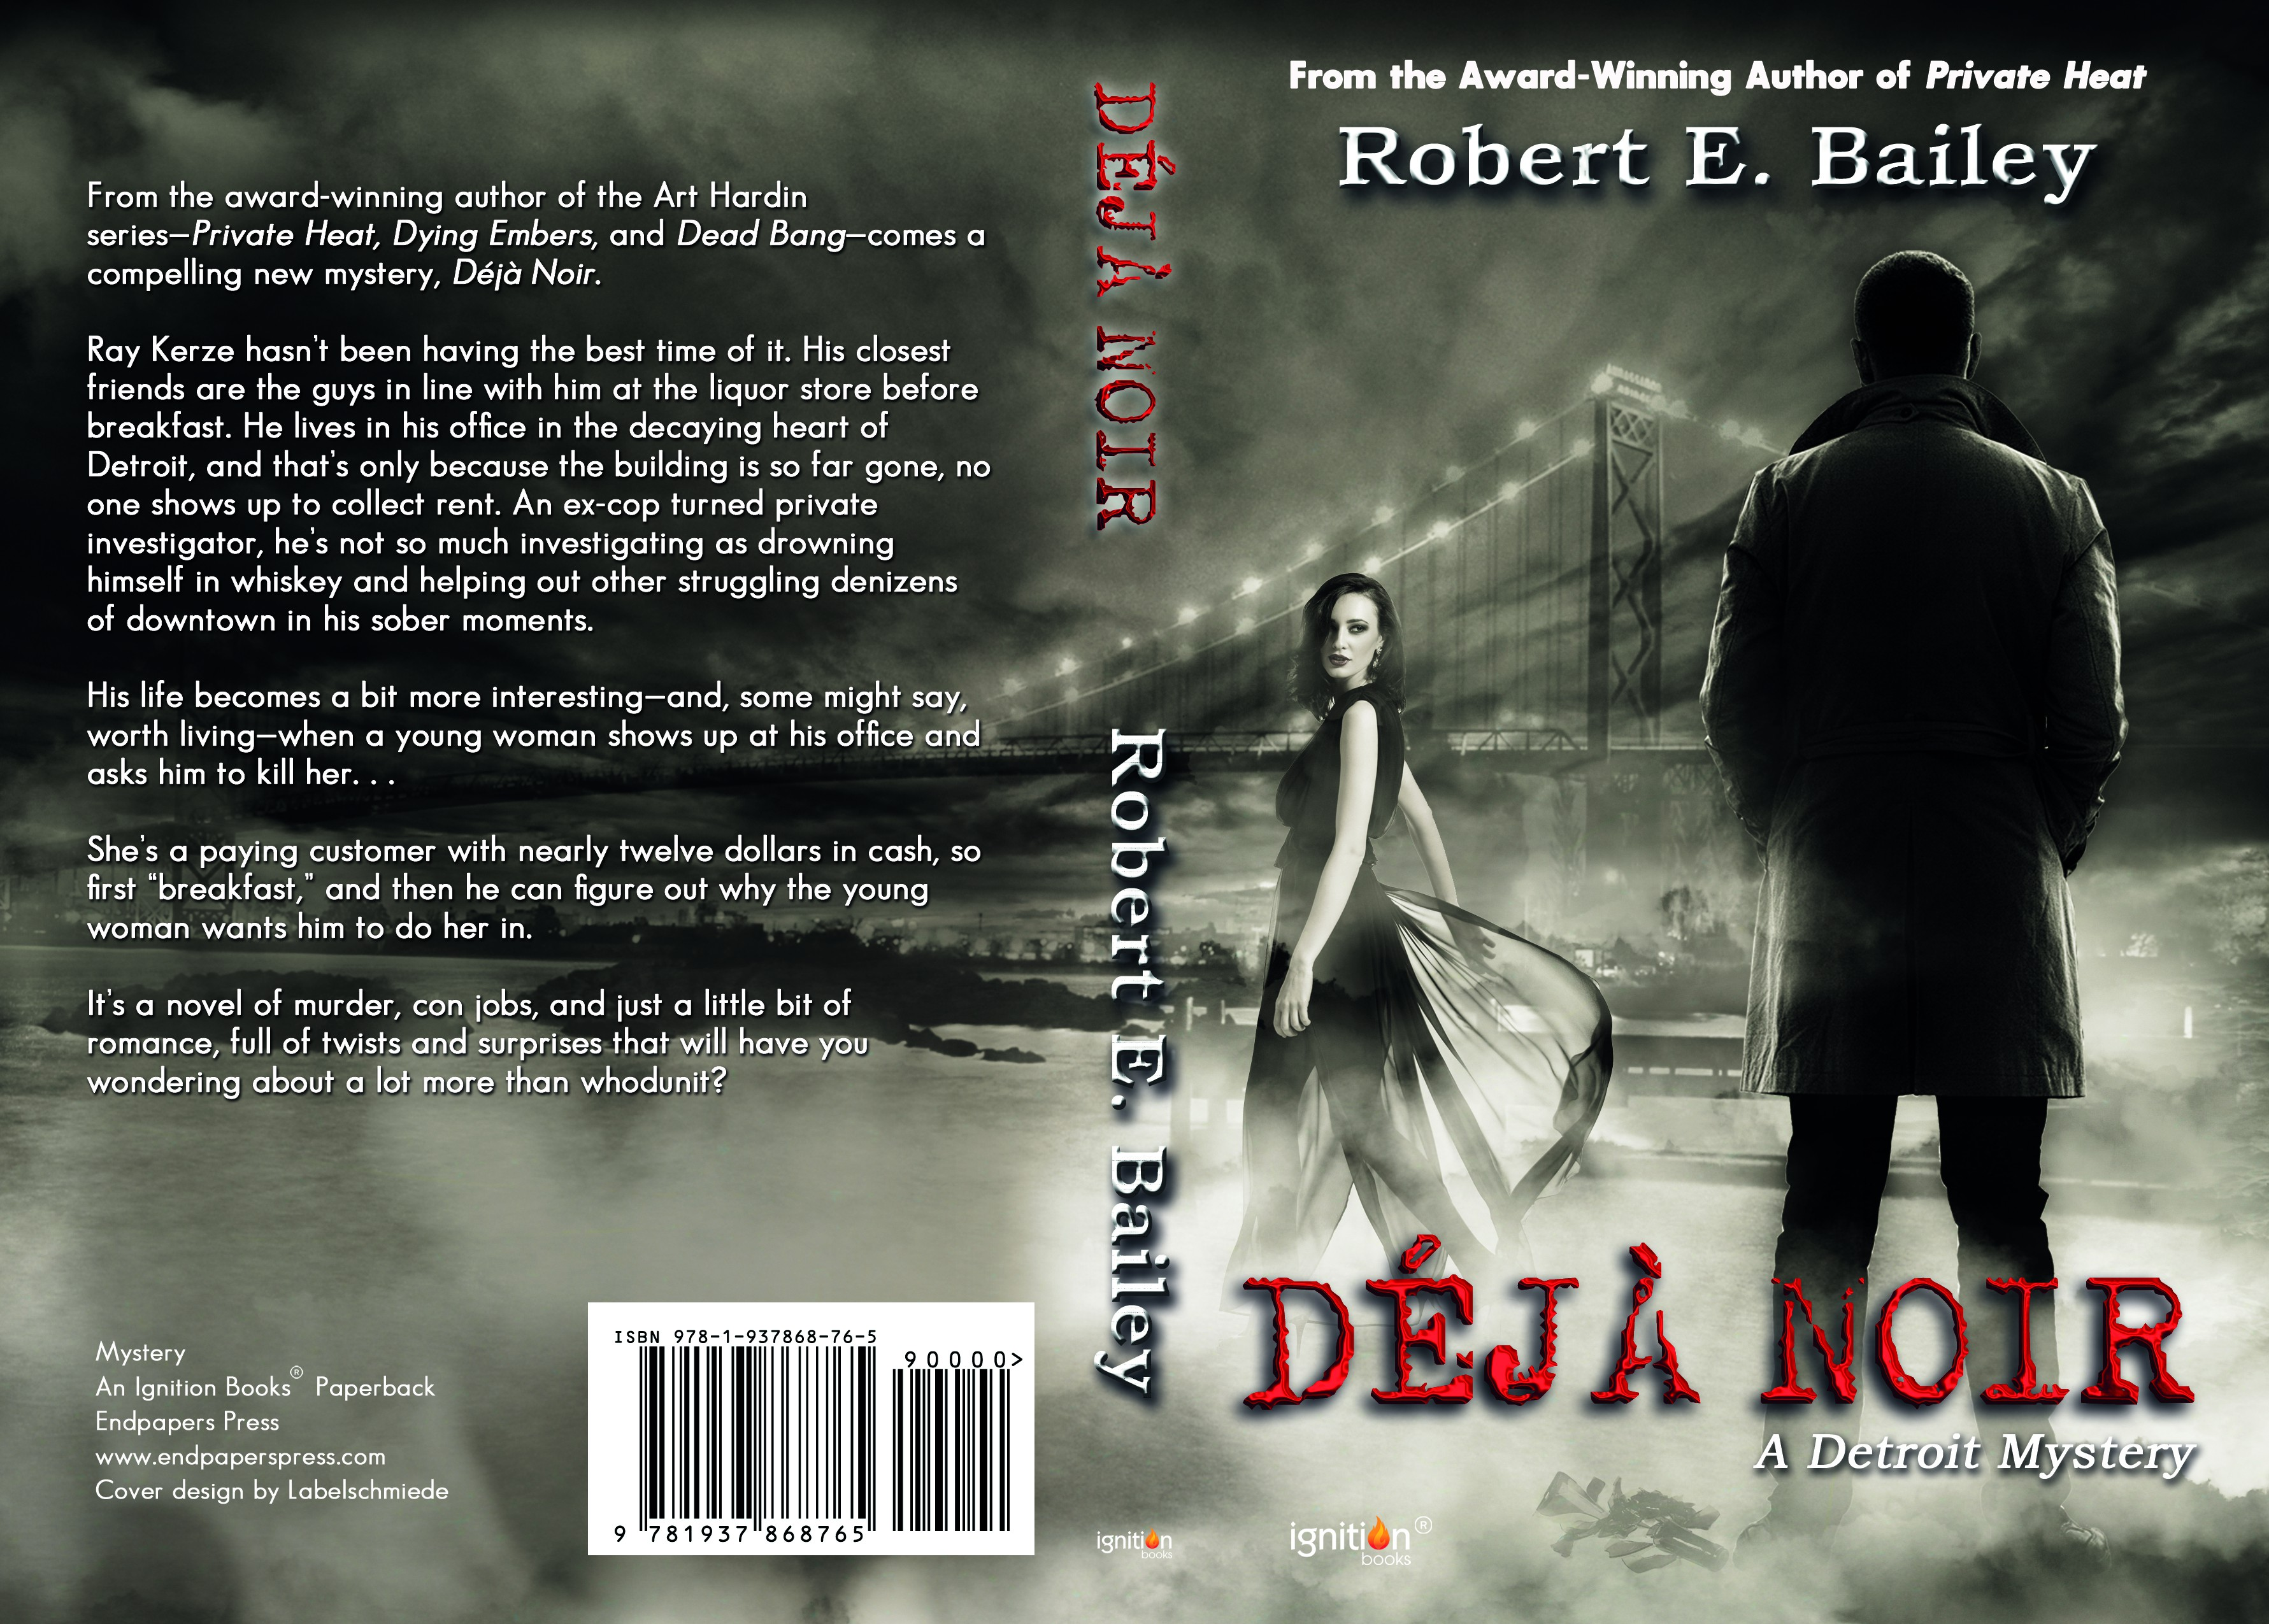 Create a cover for an award-winning mystery author!